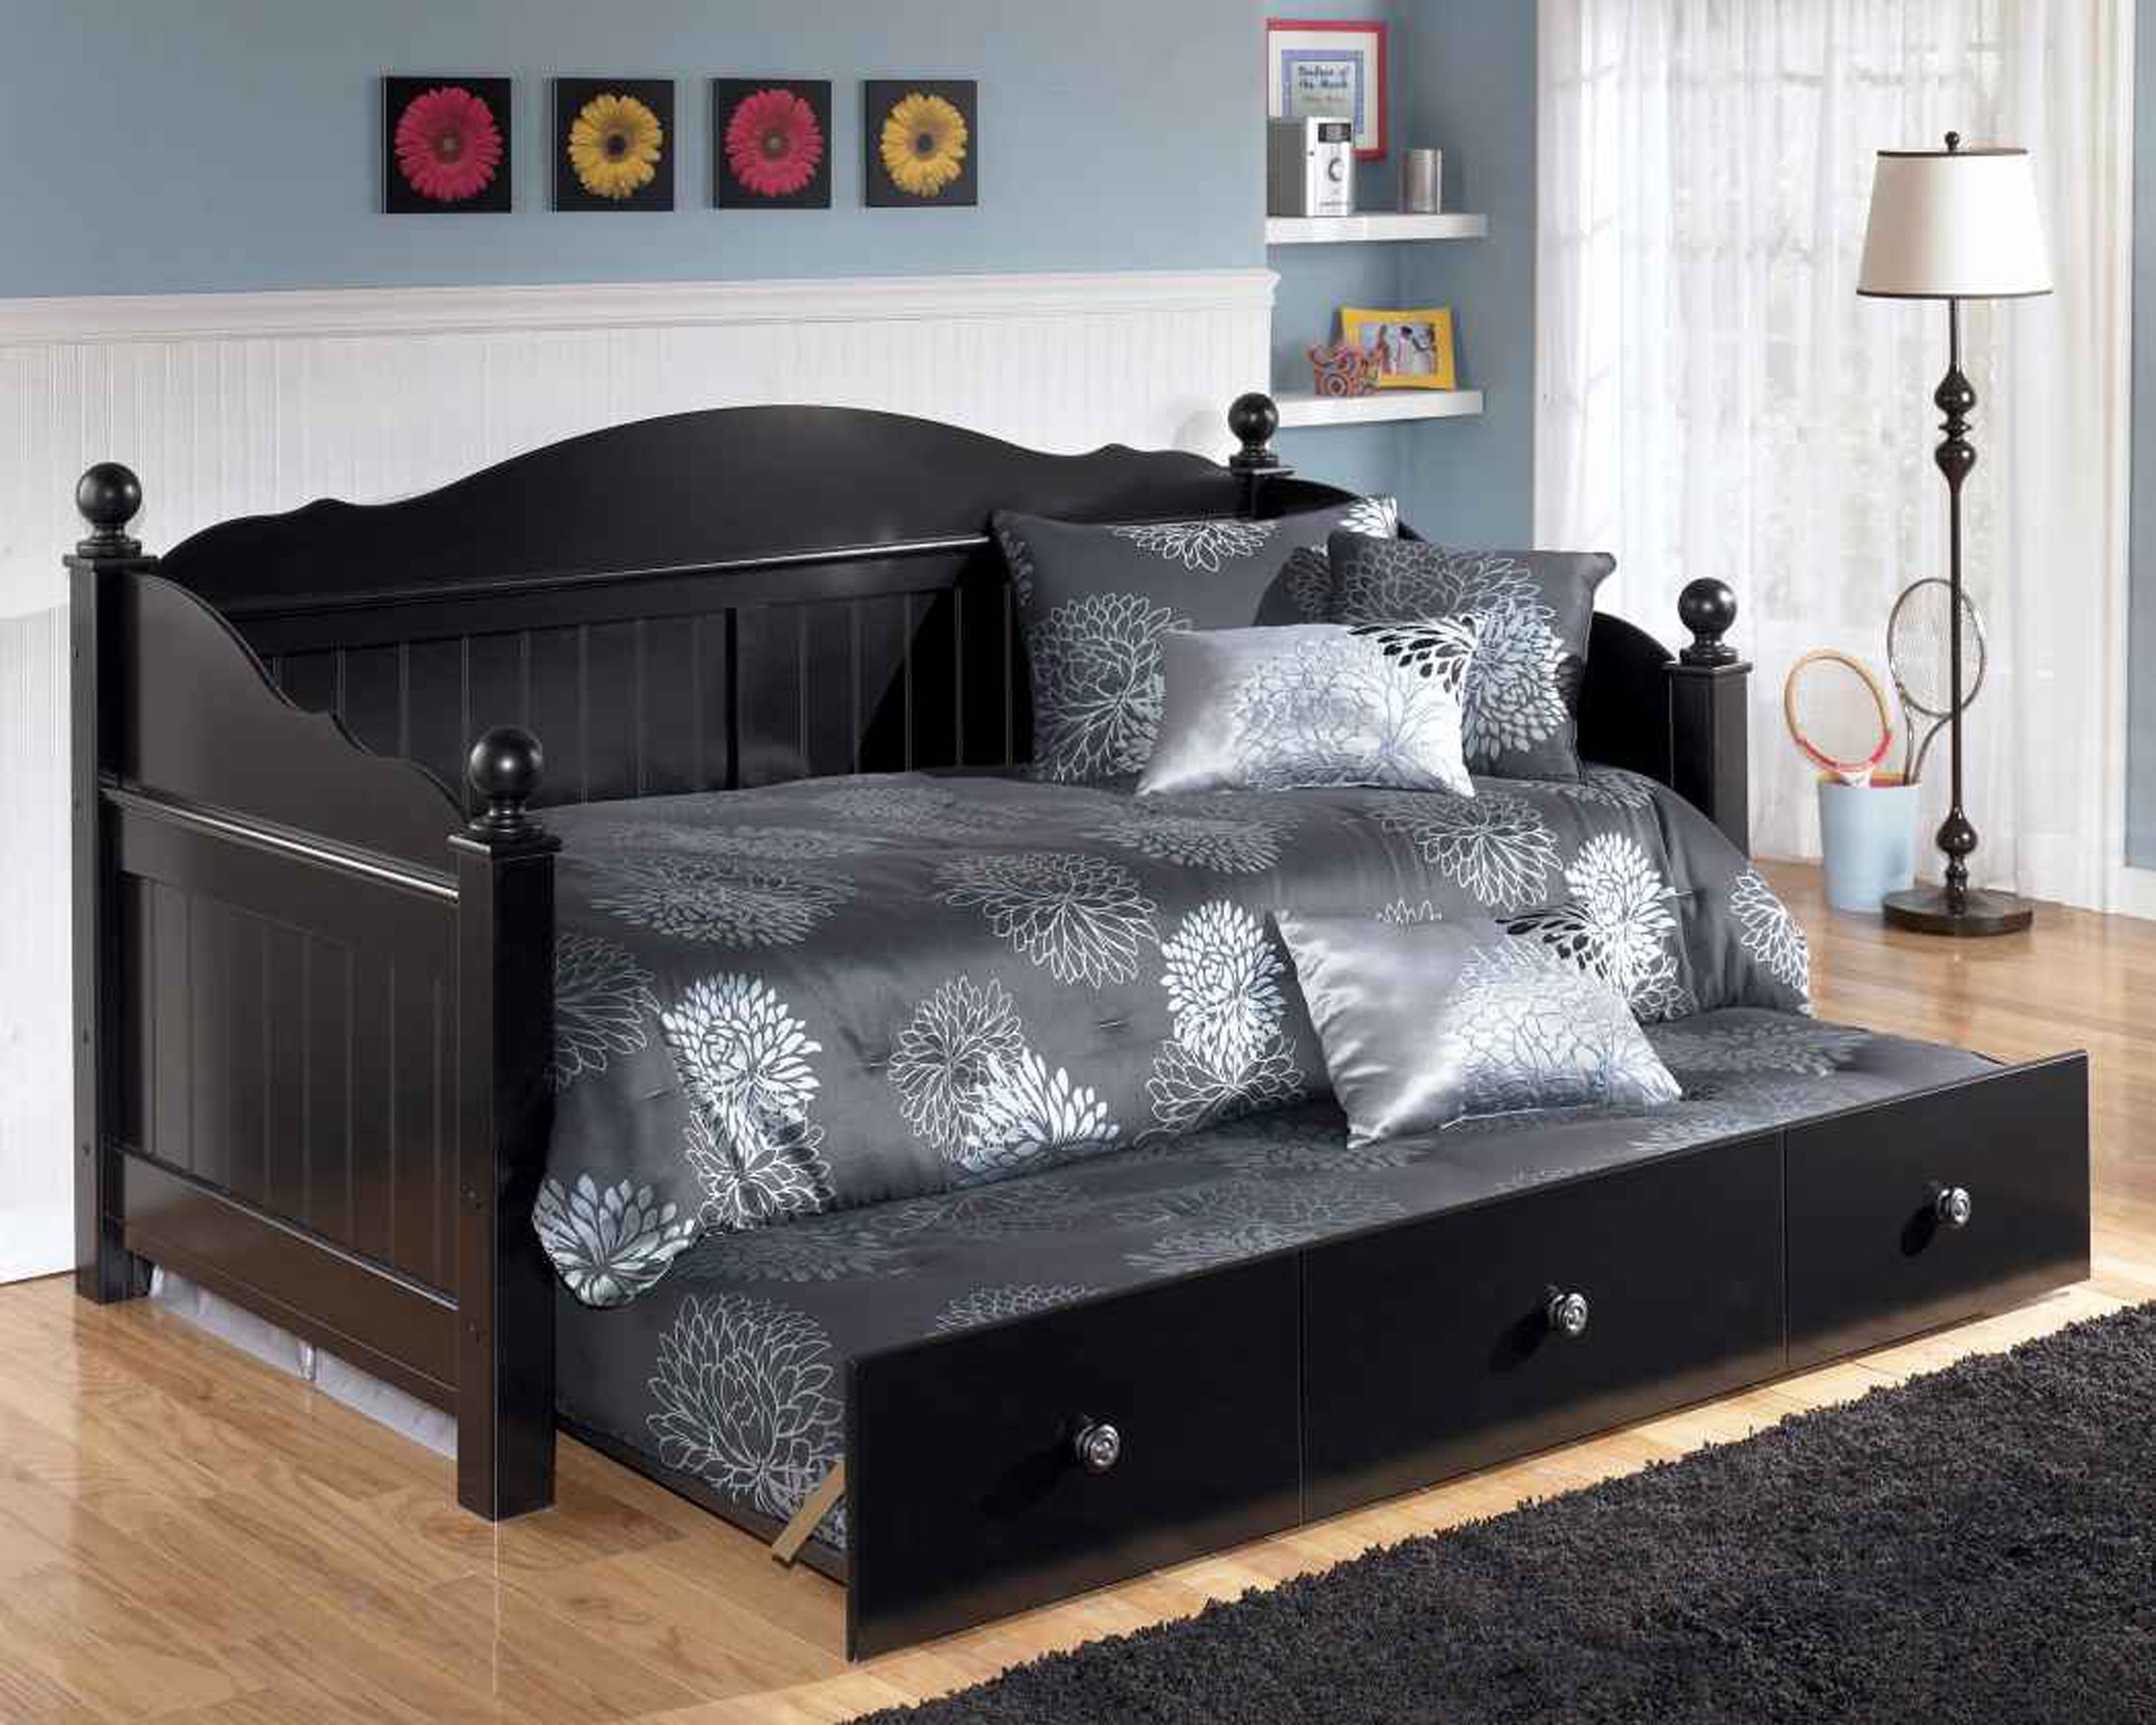 Best Feature Design Innovative Trundle Bed Covers Design 400 x 300